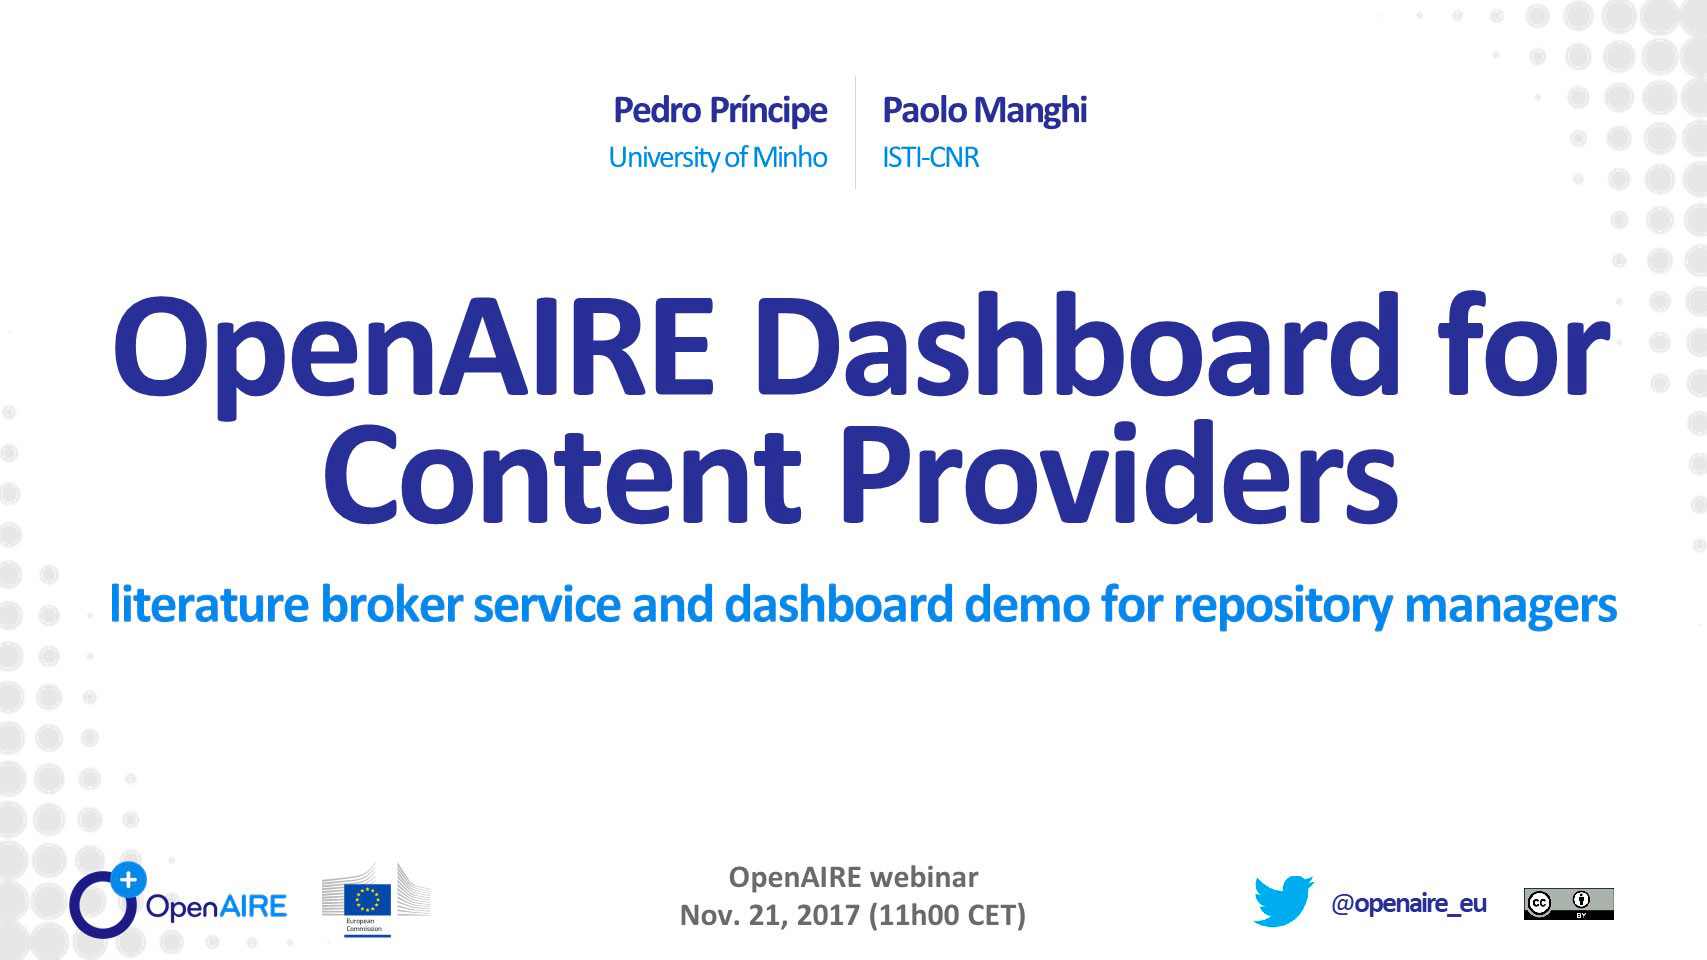 Webinar DashboardContentProviders Nov2017